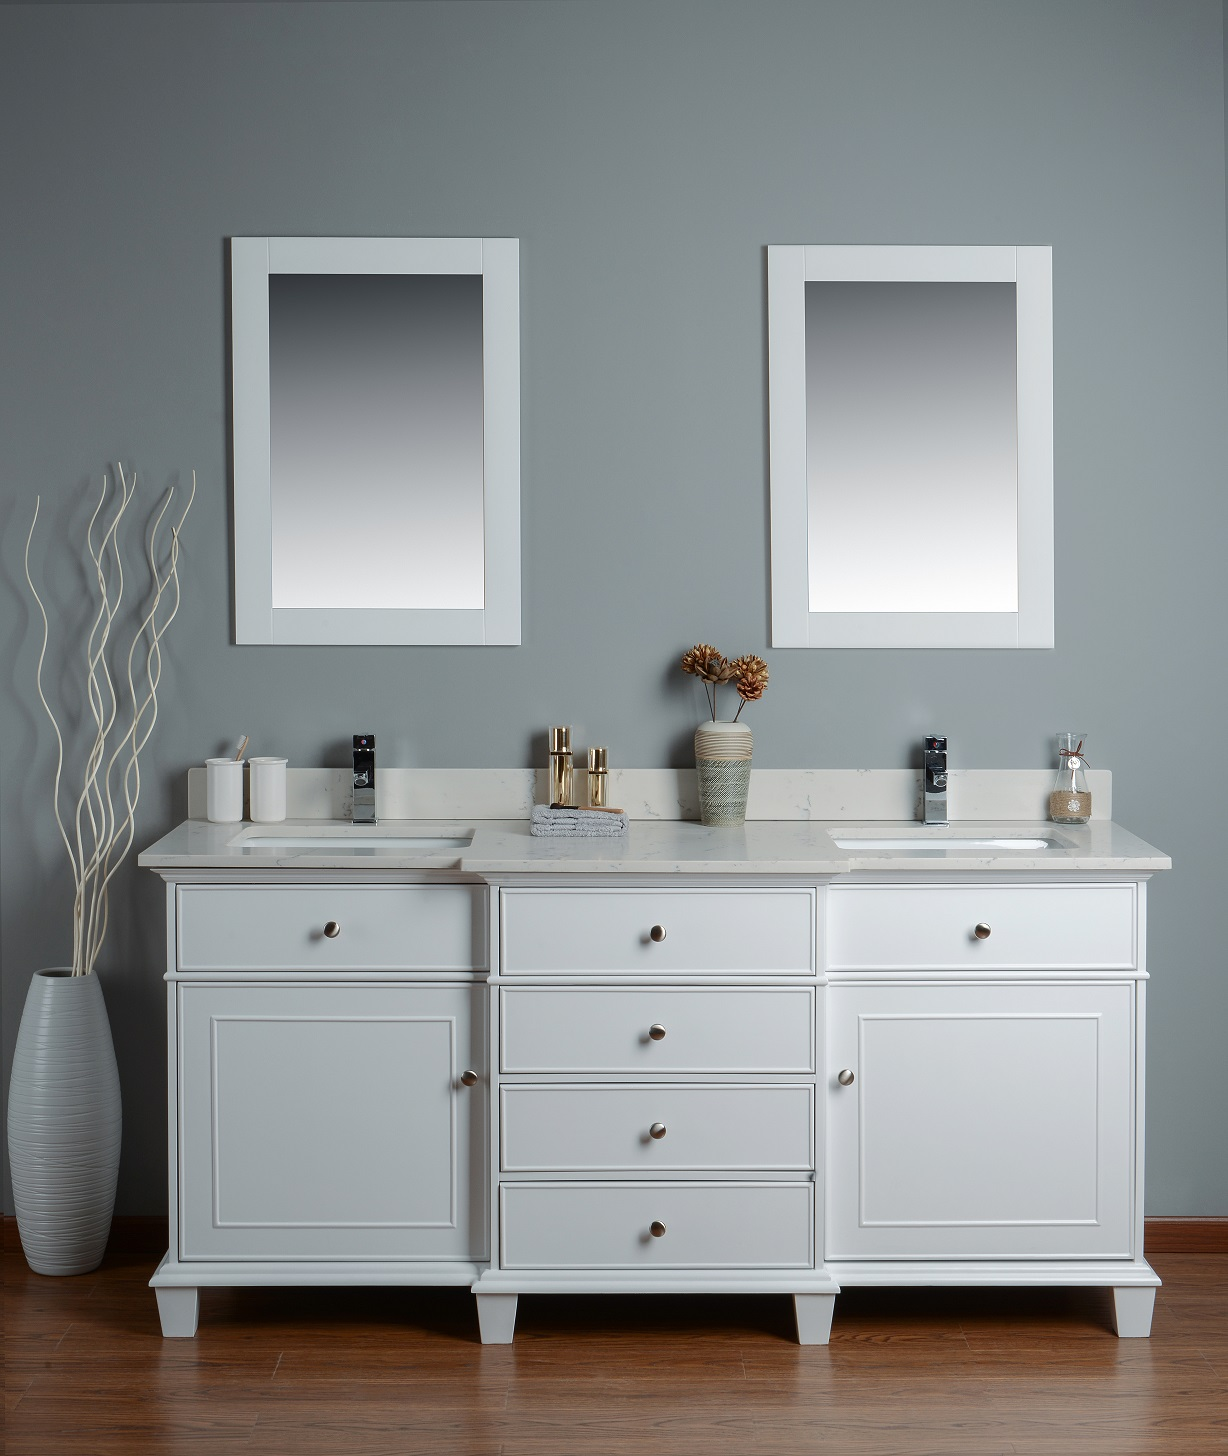 c ks zebra vanity dior single grey zg set bathroom usa in virtu